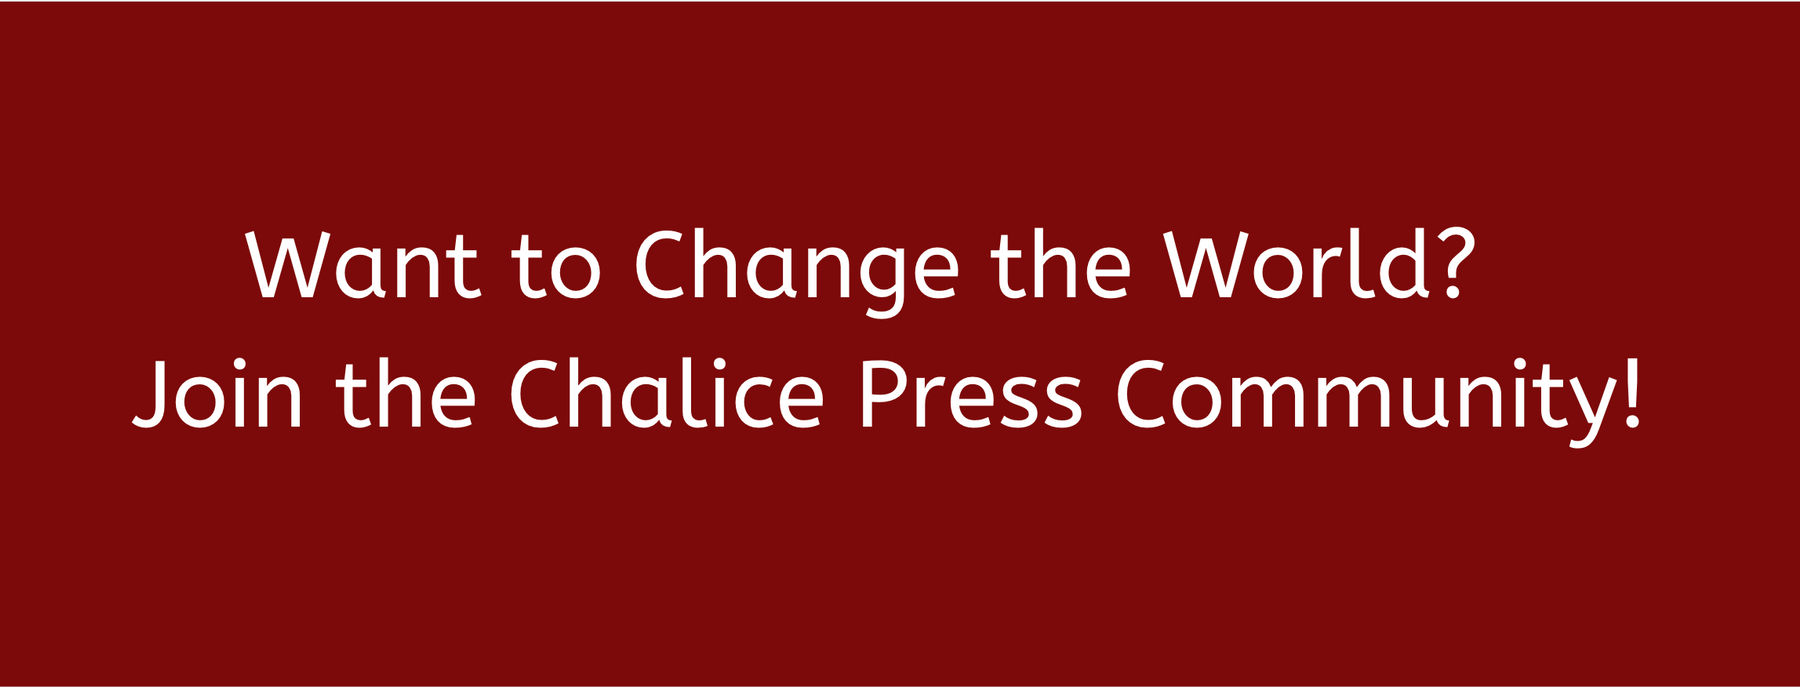 Join the Chalice Press Community for updates, news, and inspiration!